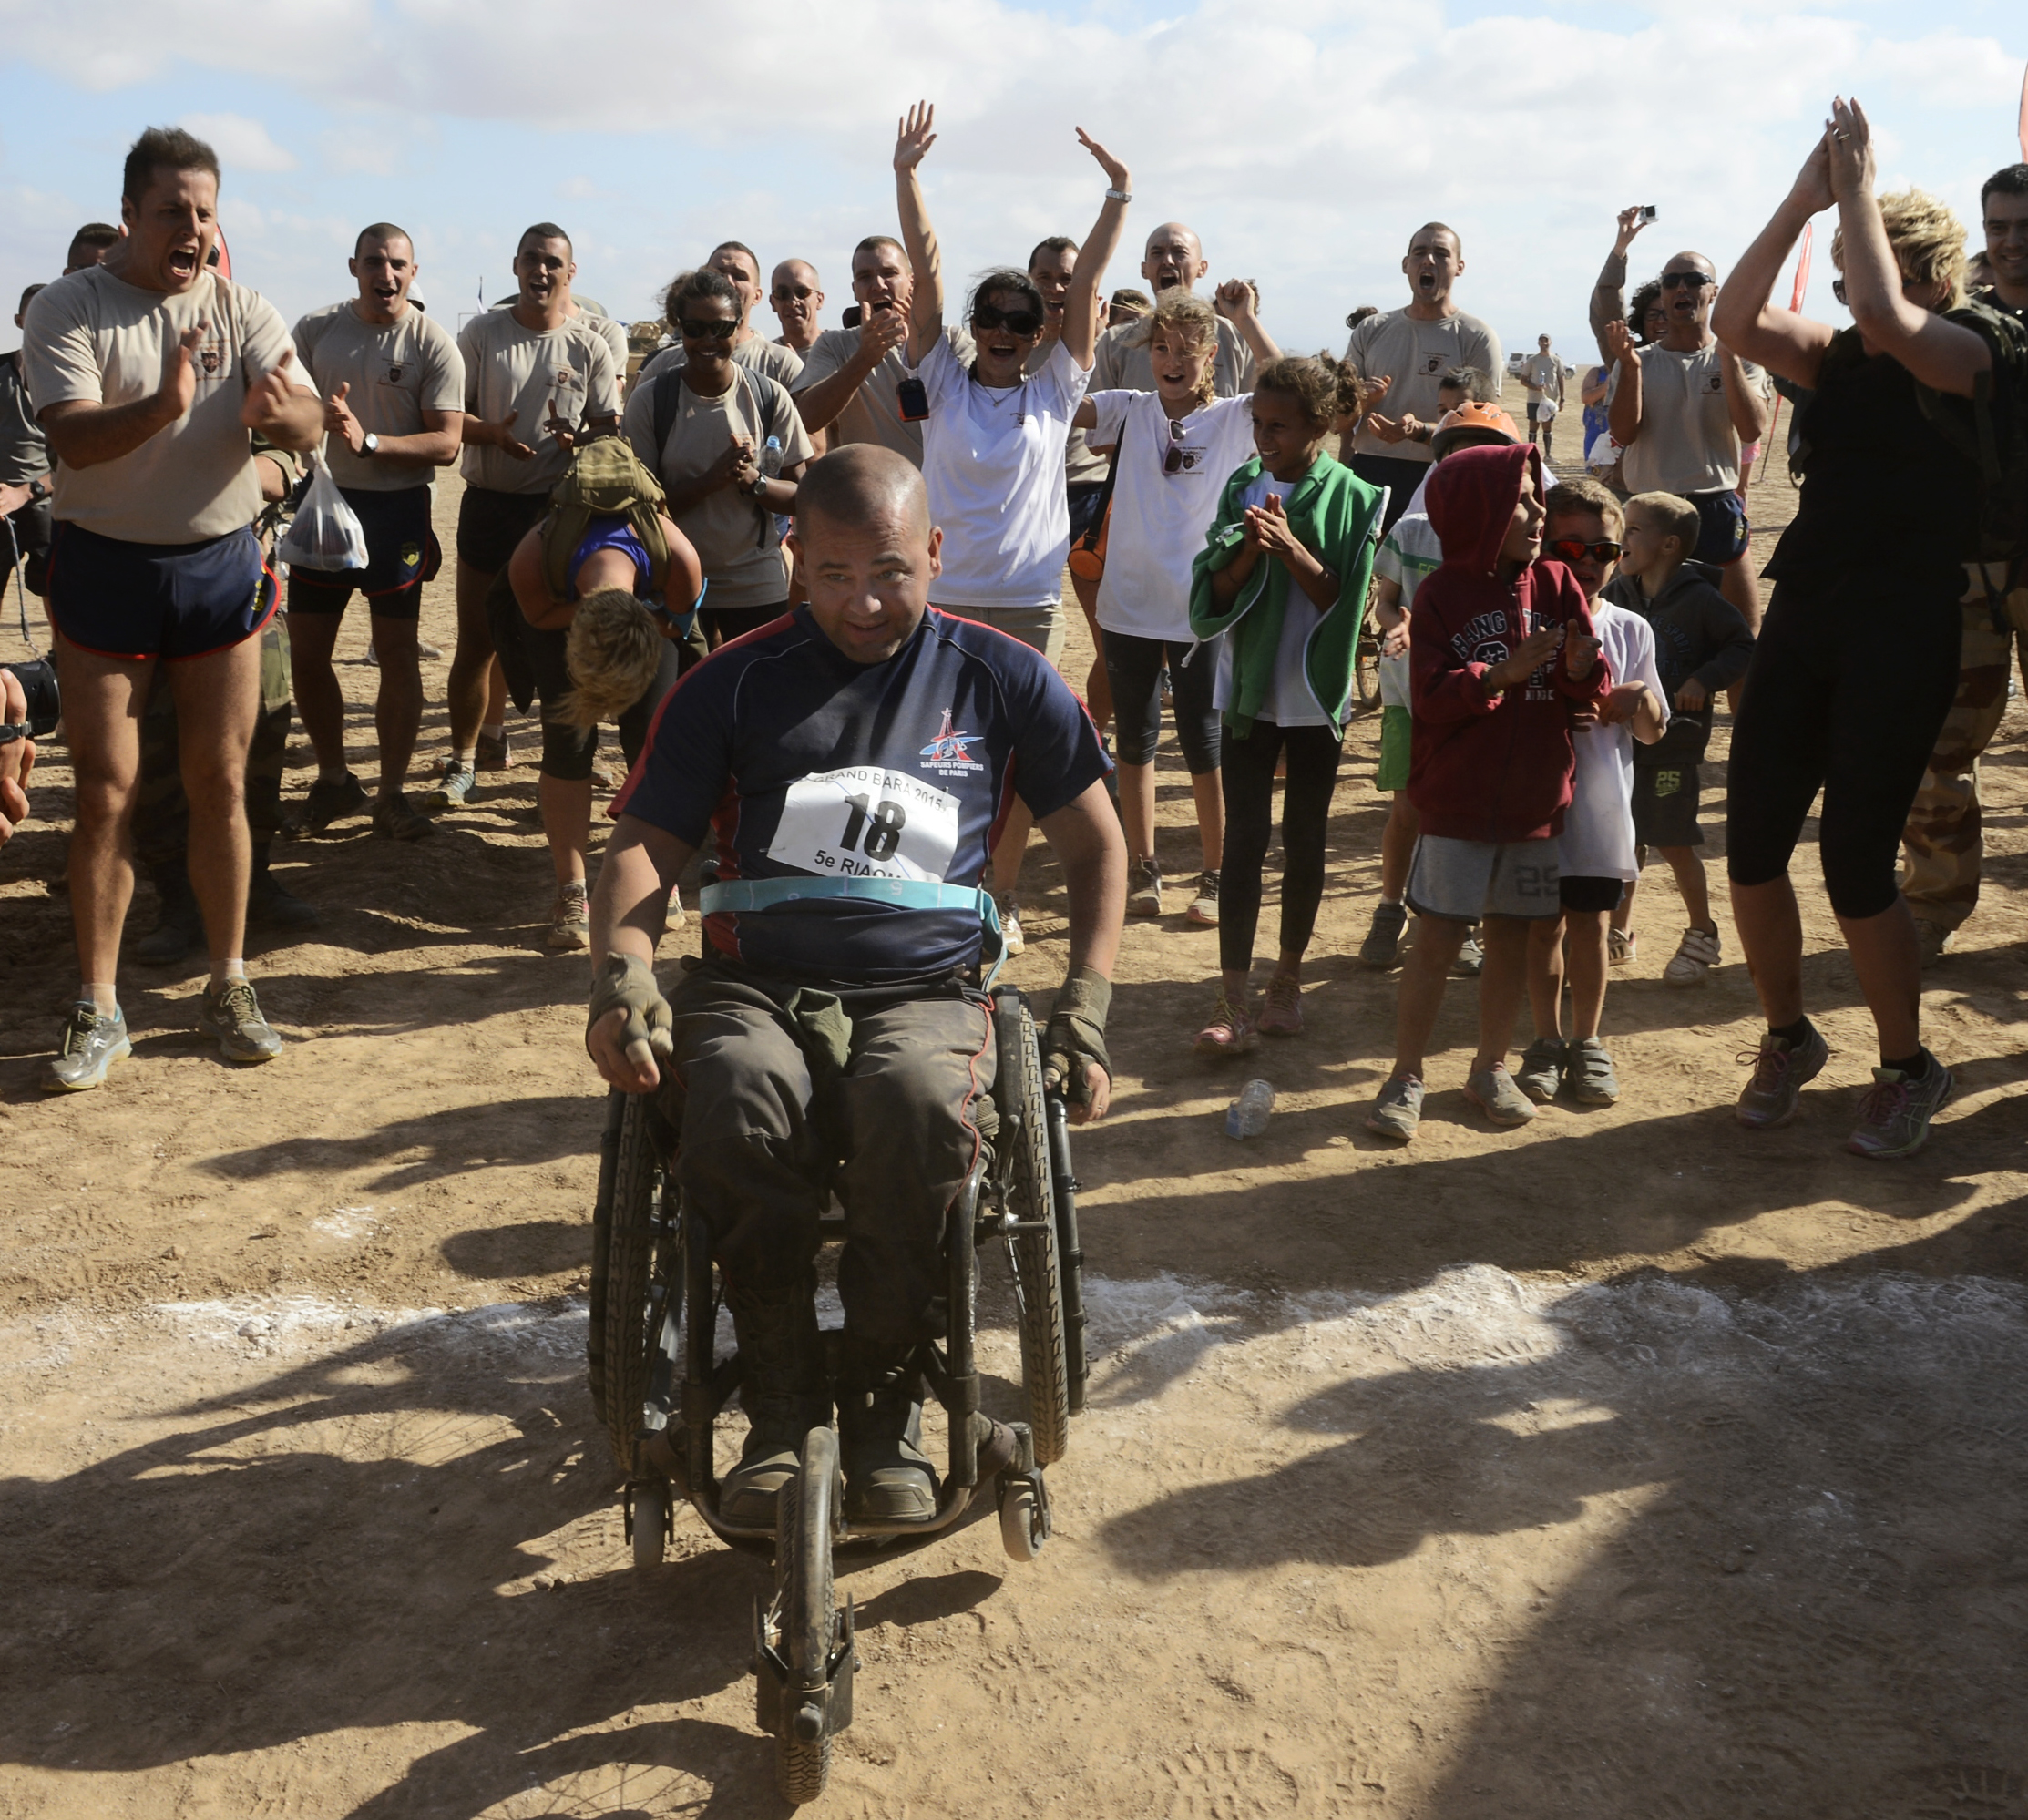 French Army Sgt. Vincent Dorival, Paris Fire Brigade, is greeted and cheered by fellow competitors after crossing the finish line during the Annual Grand Bara 15K race Dec.17, 2015, in Djibouti. Although paralyzed from the chest down, Dorival participates in races and plans to cross Death Valley in his wheel chair in 2017. (U.S. Air Force photo by Tech. Sgt. Dan DeCook)